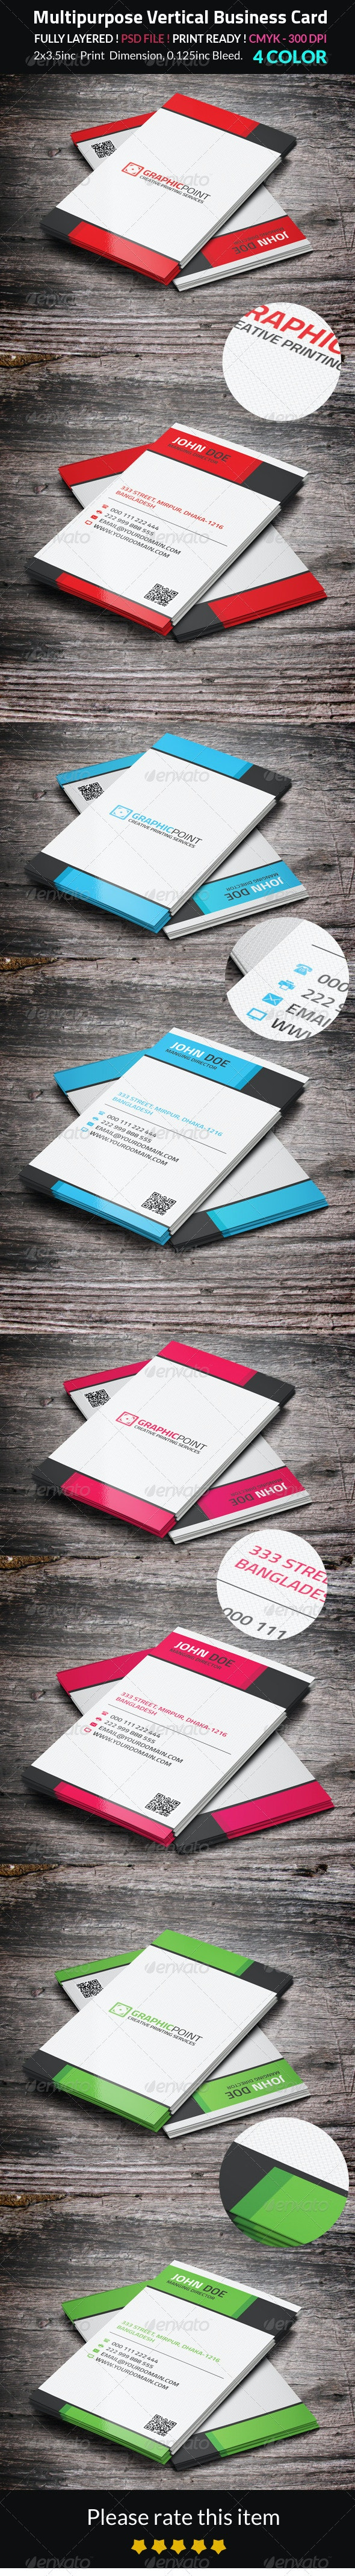 Multipurpose Vertical Business Card - Corporate Business Cards